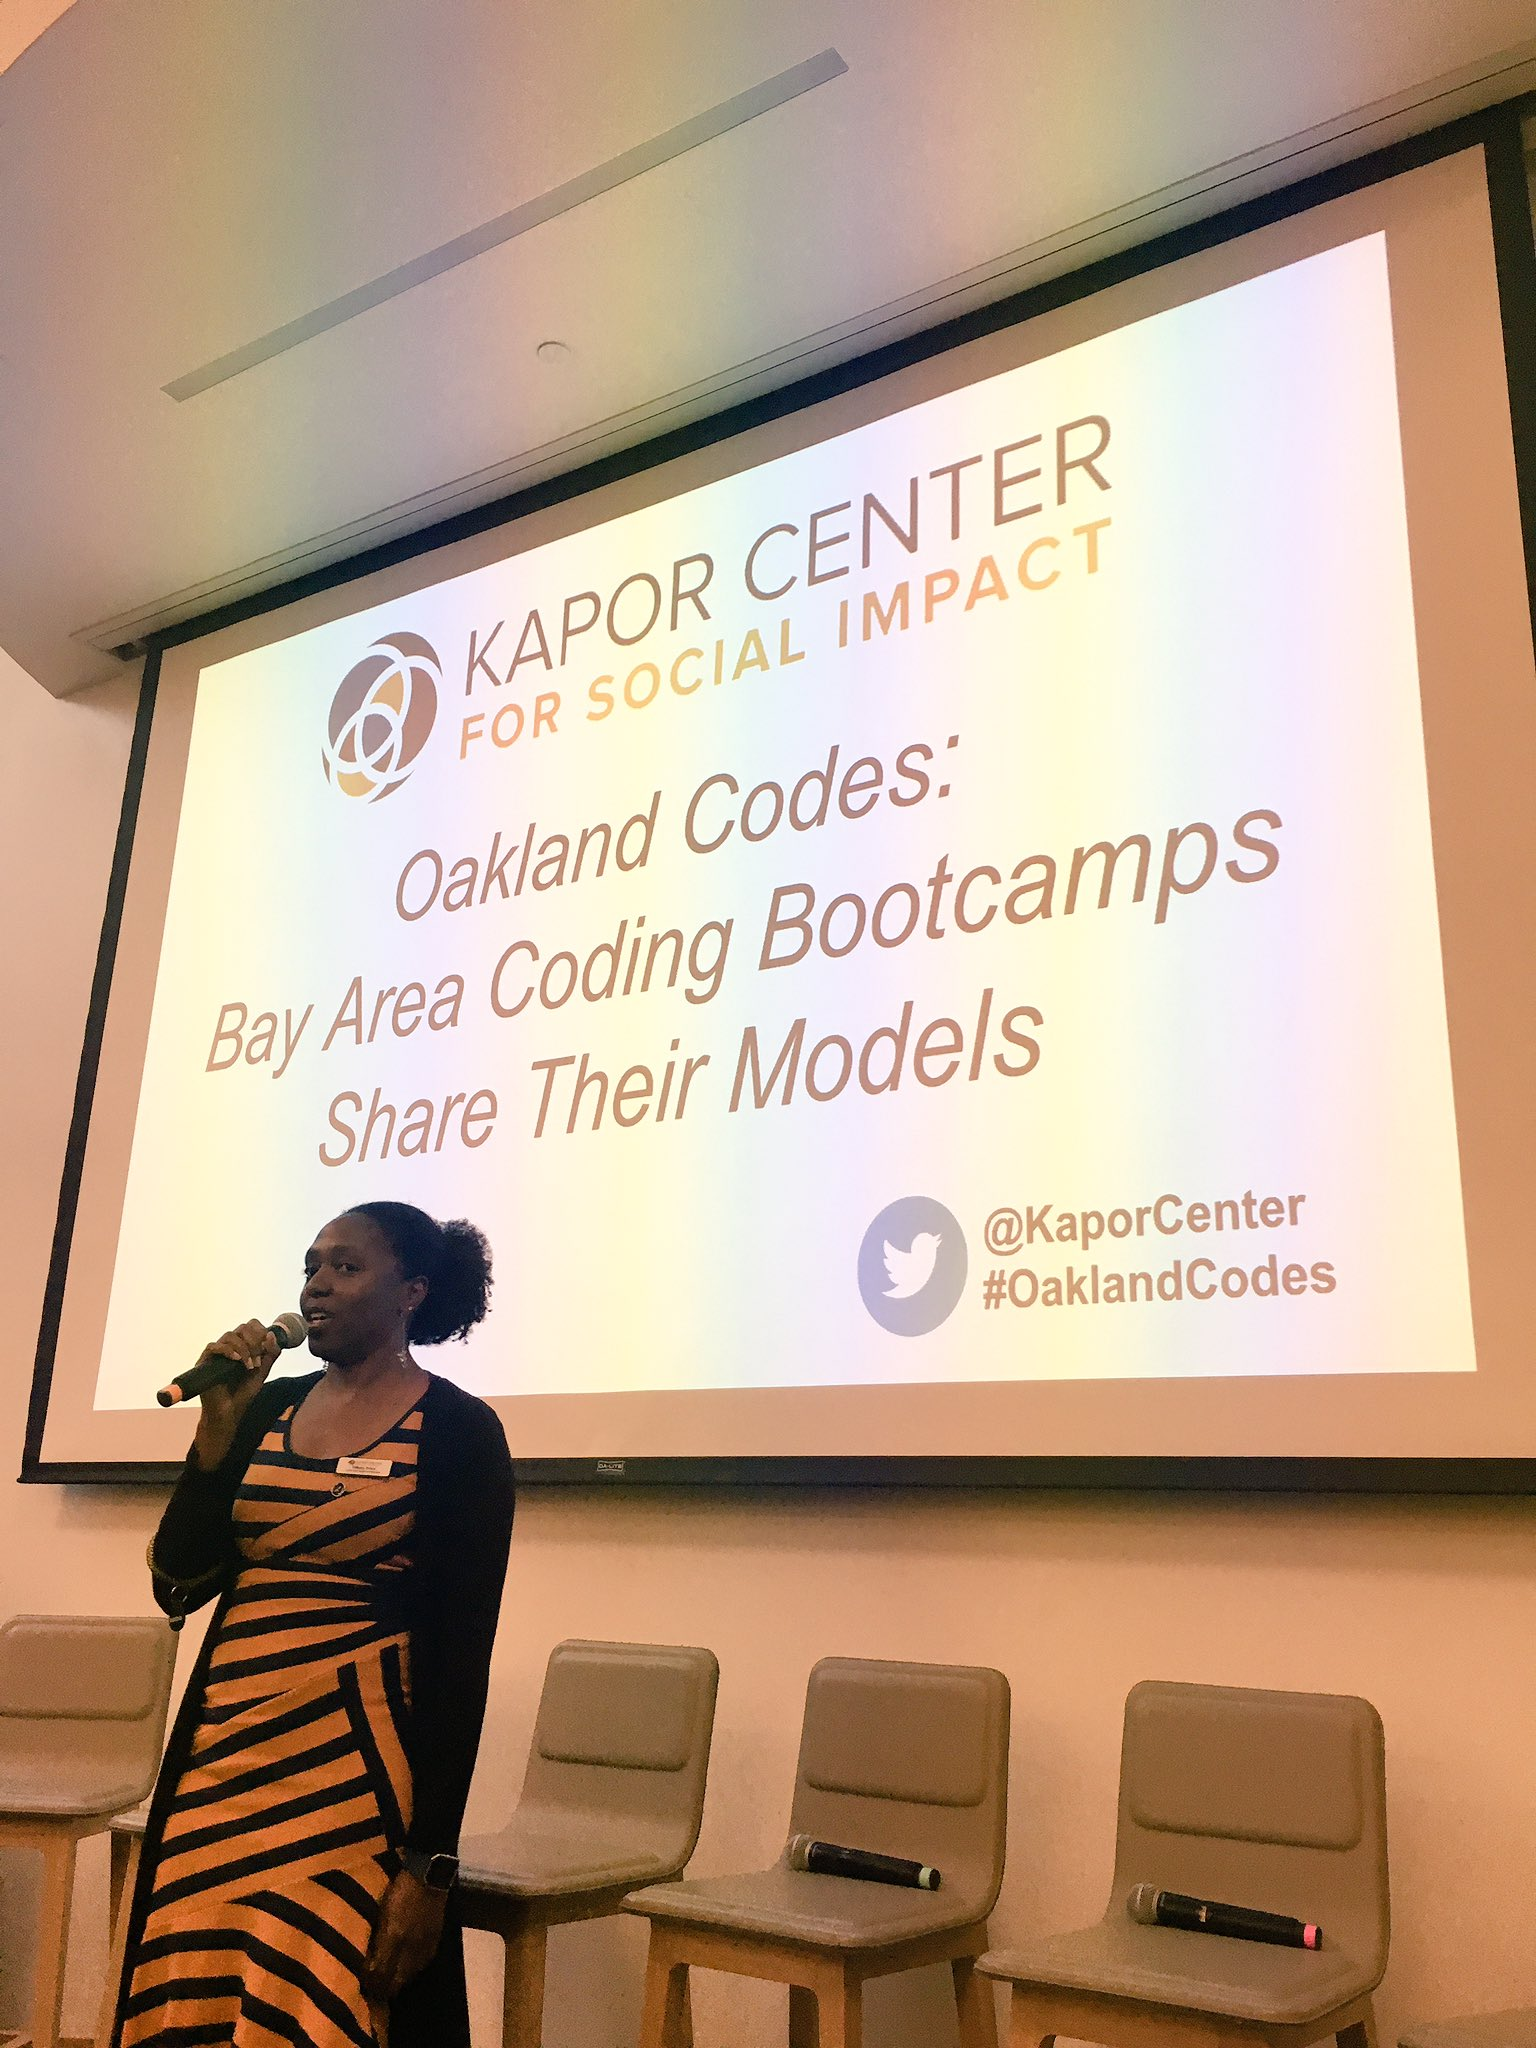 Thumbnail for #OaklandCodes Coding Bootcamps